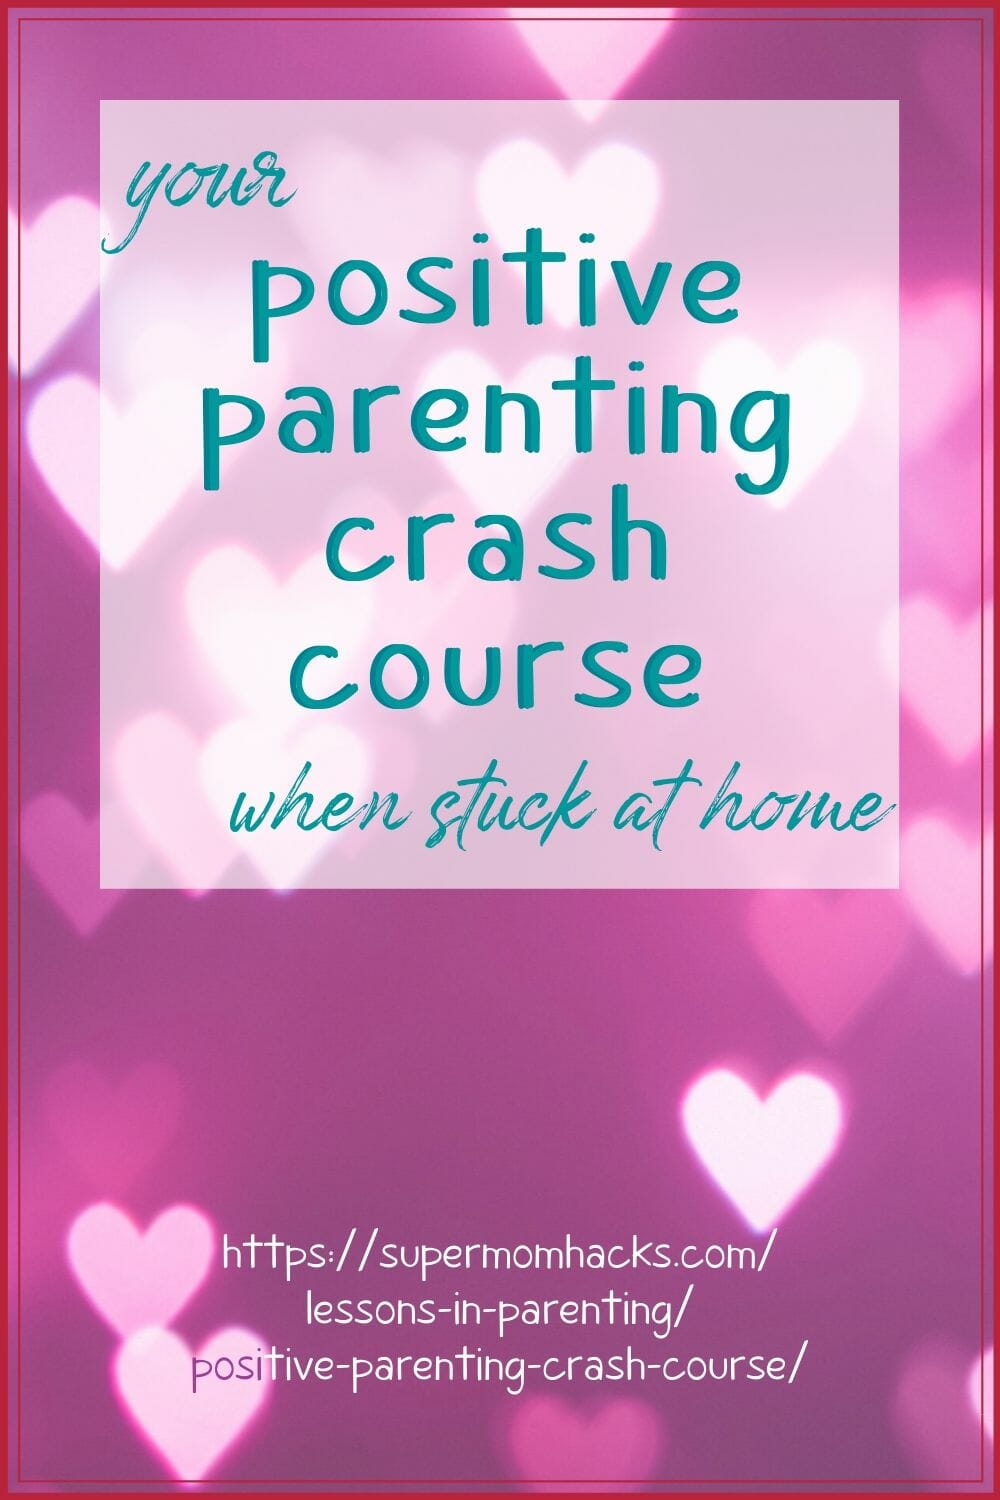 Have you tried positive parenting before? It's really helped our kids cope while stuck at home. If not, here's your positive parenting crash course.